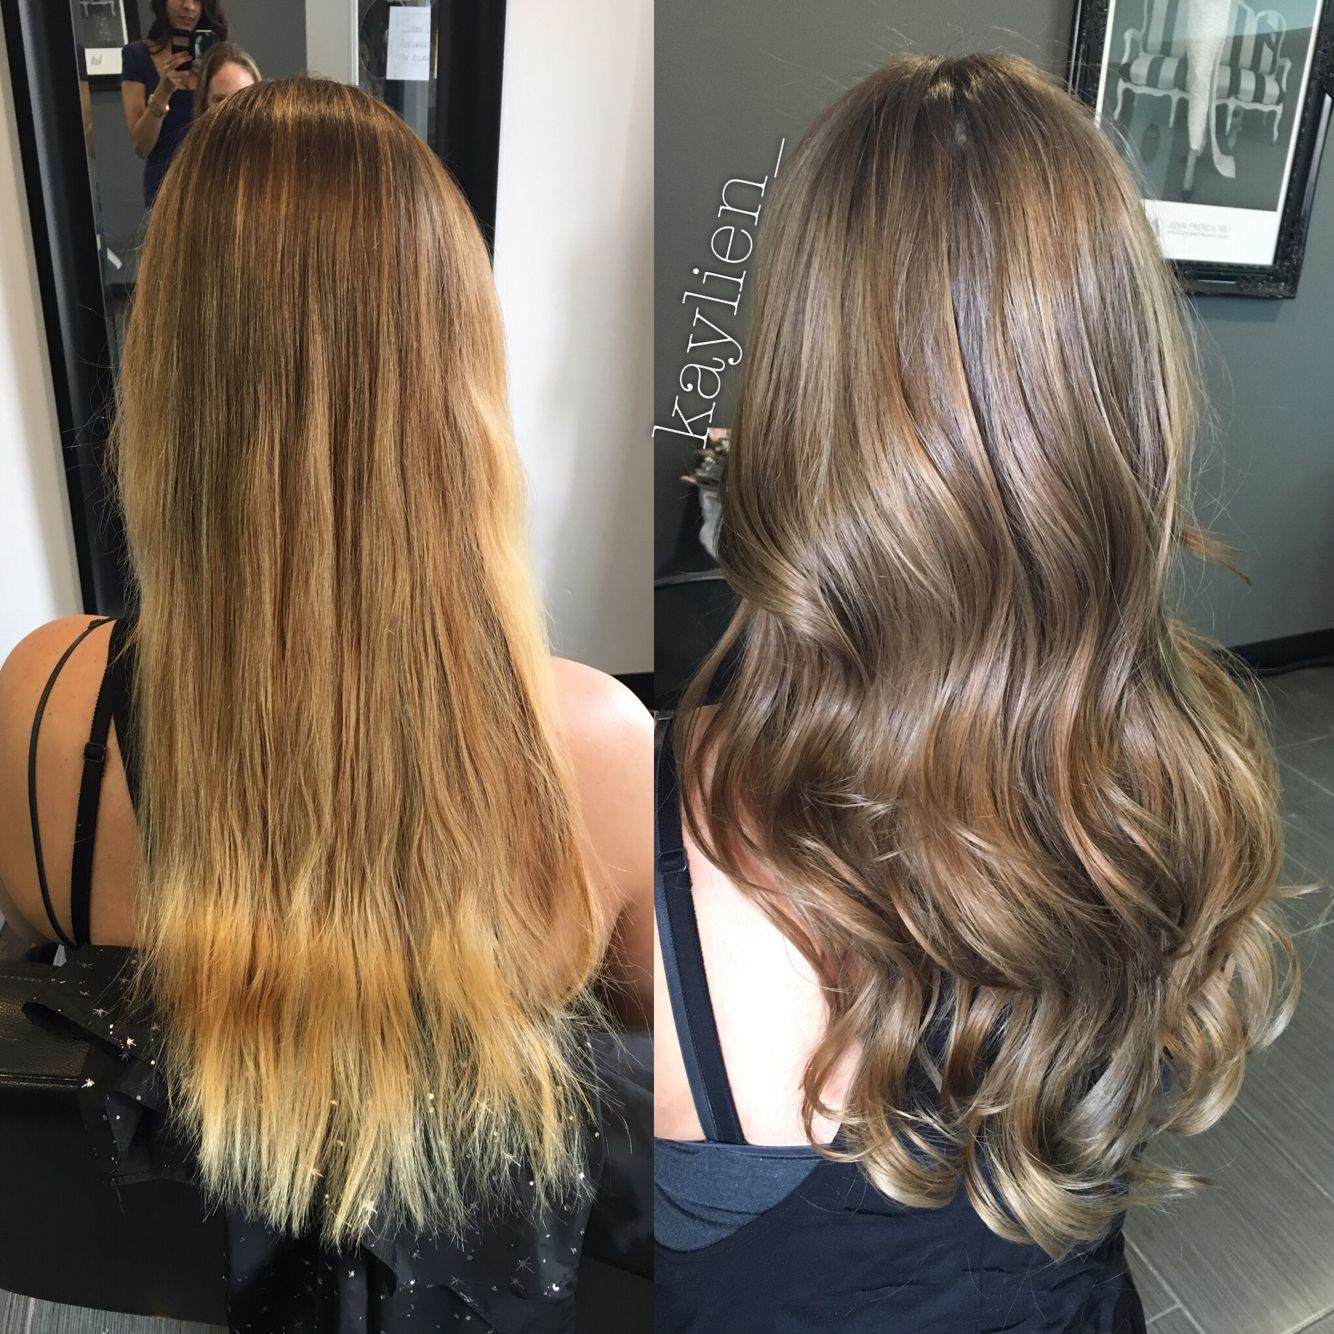 From Golden Blonde To A Natural Light Ash Brown Olaplex Treatment